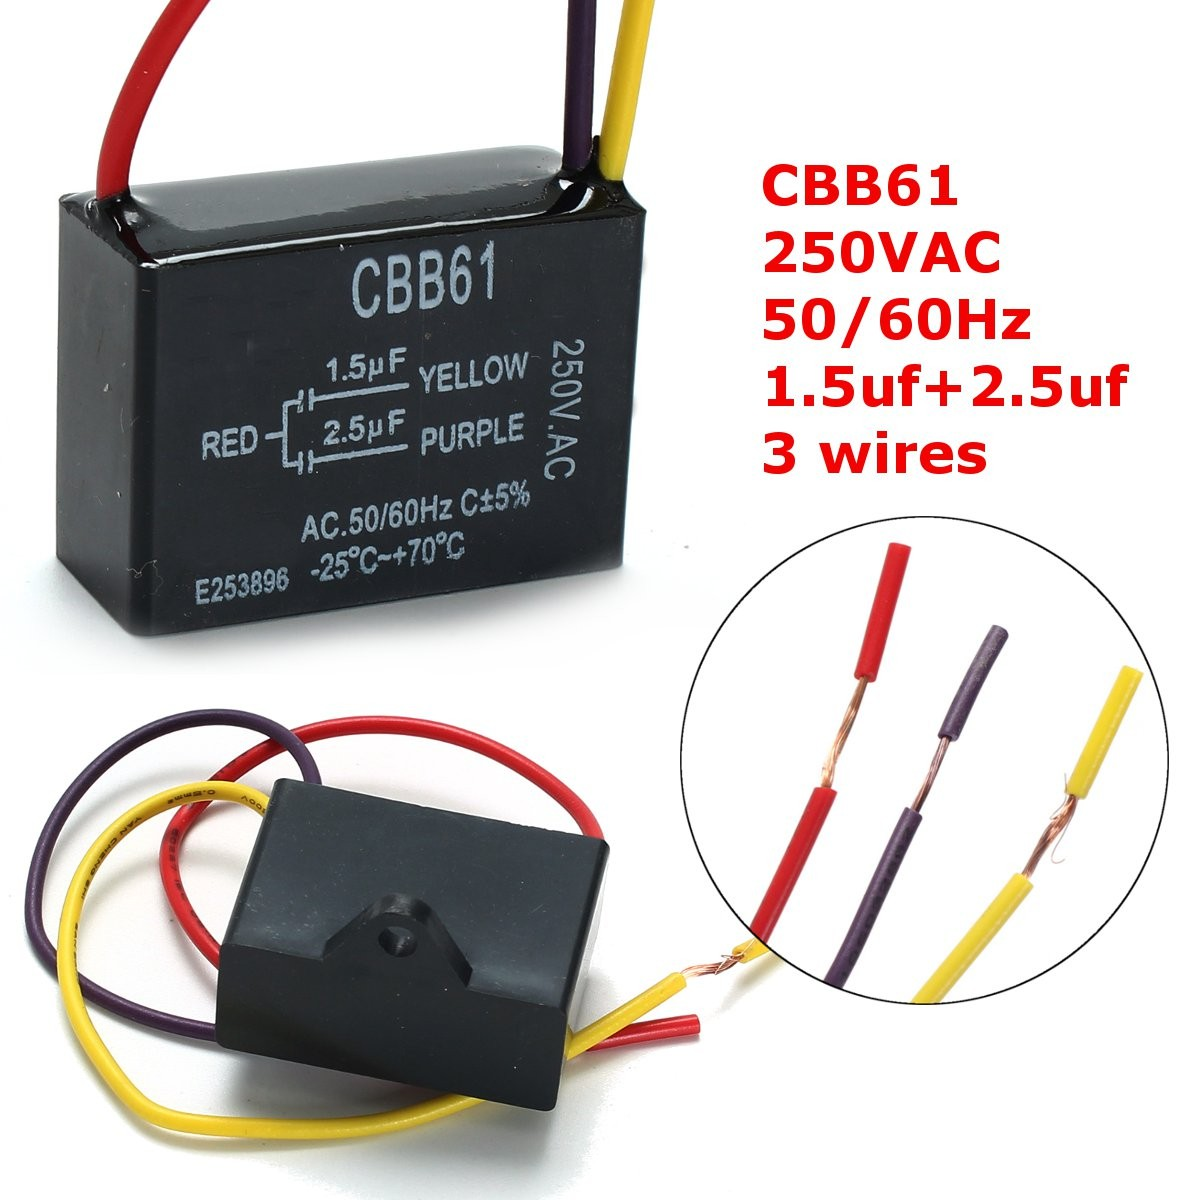 Capacitor For Fan CBB61 1.5uF-2.5uF 250VAC 50/60Hz Ceiling Fan Capacitor 3 Wires -25 To +70°C Fan Part